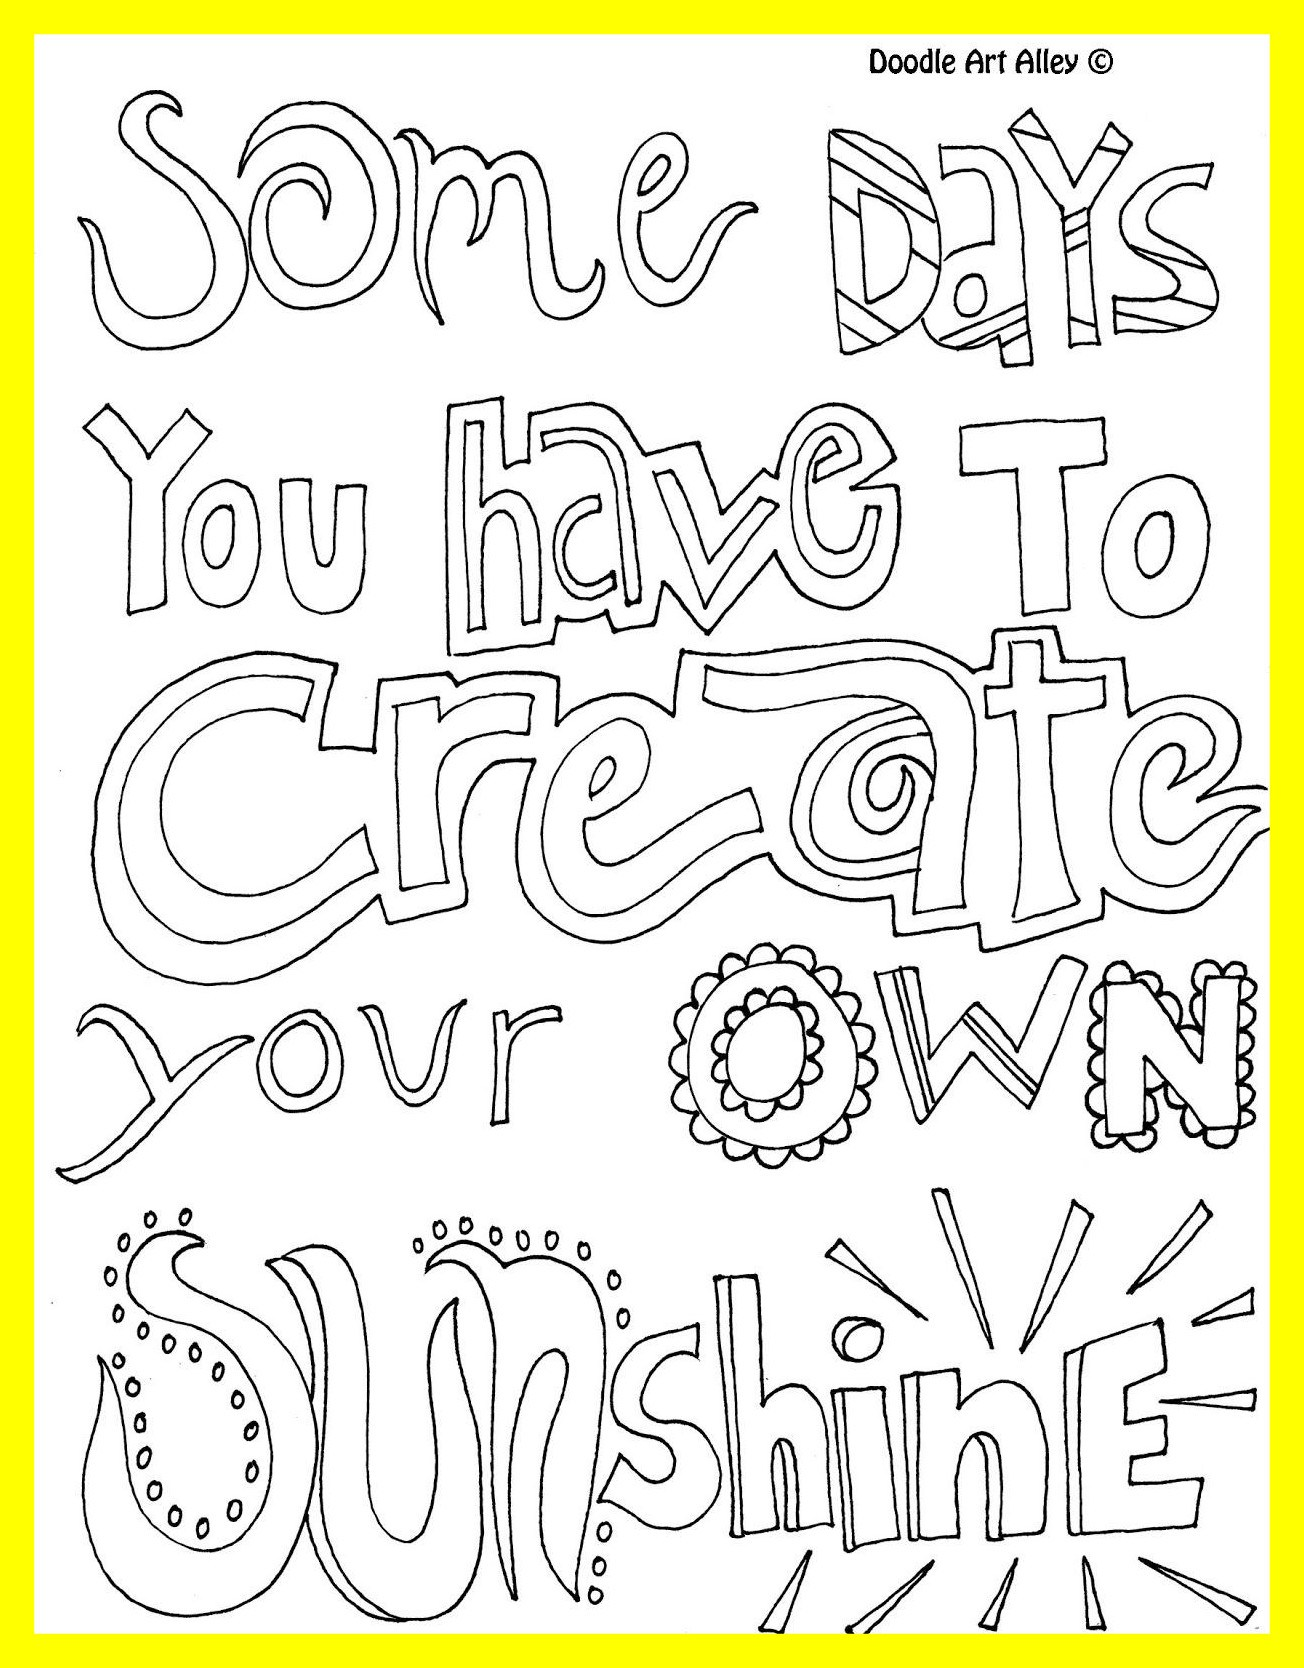 Drawing Quotes Tumblr at GetDrawings.com | Free for personal ...